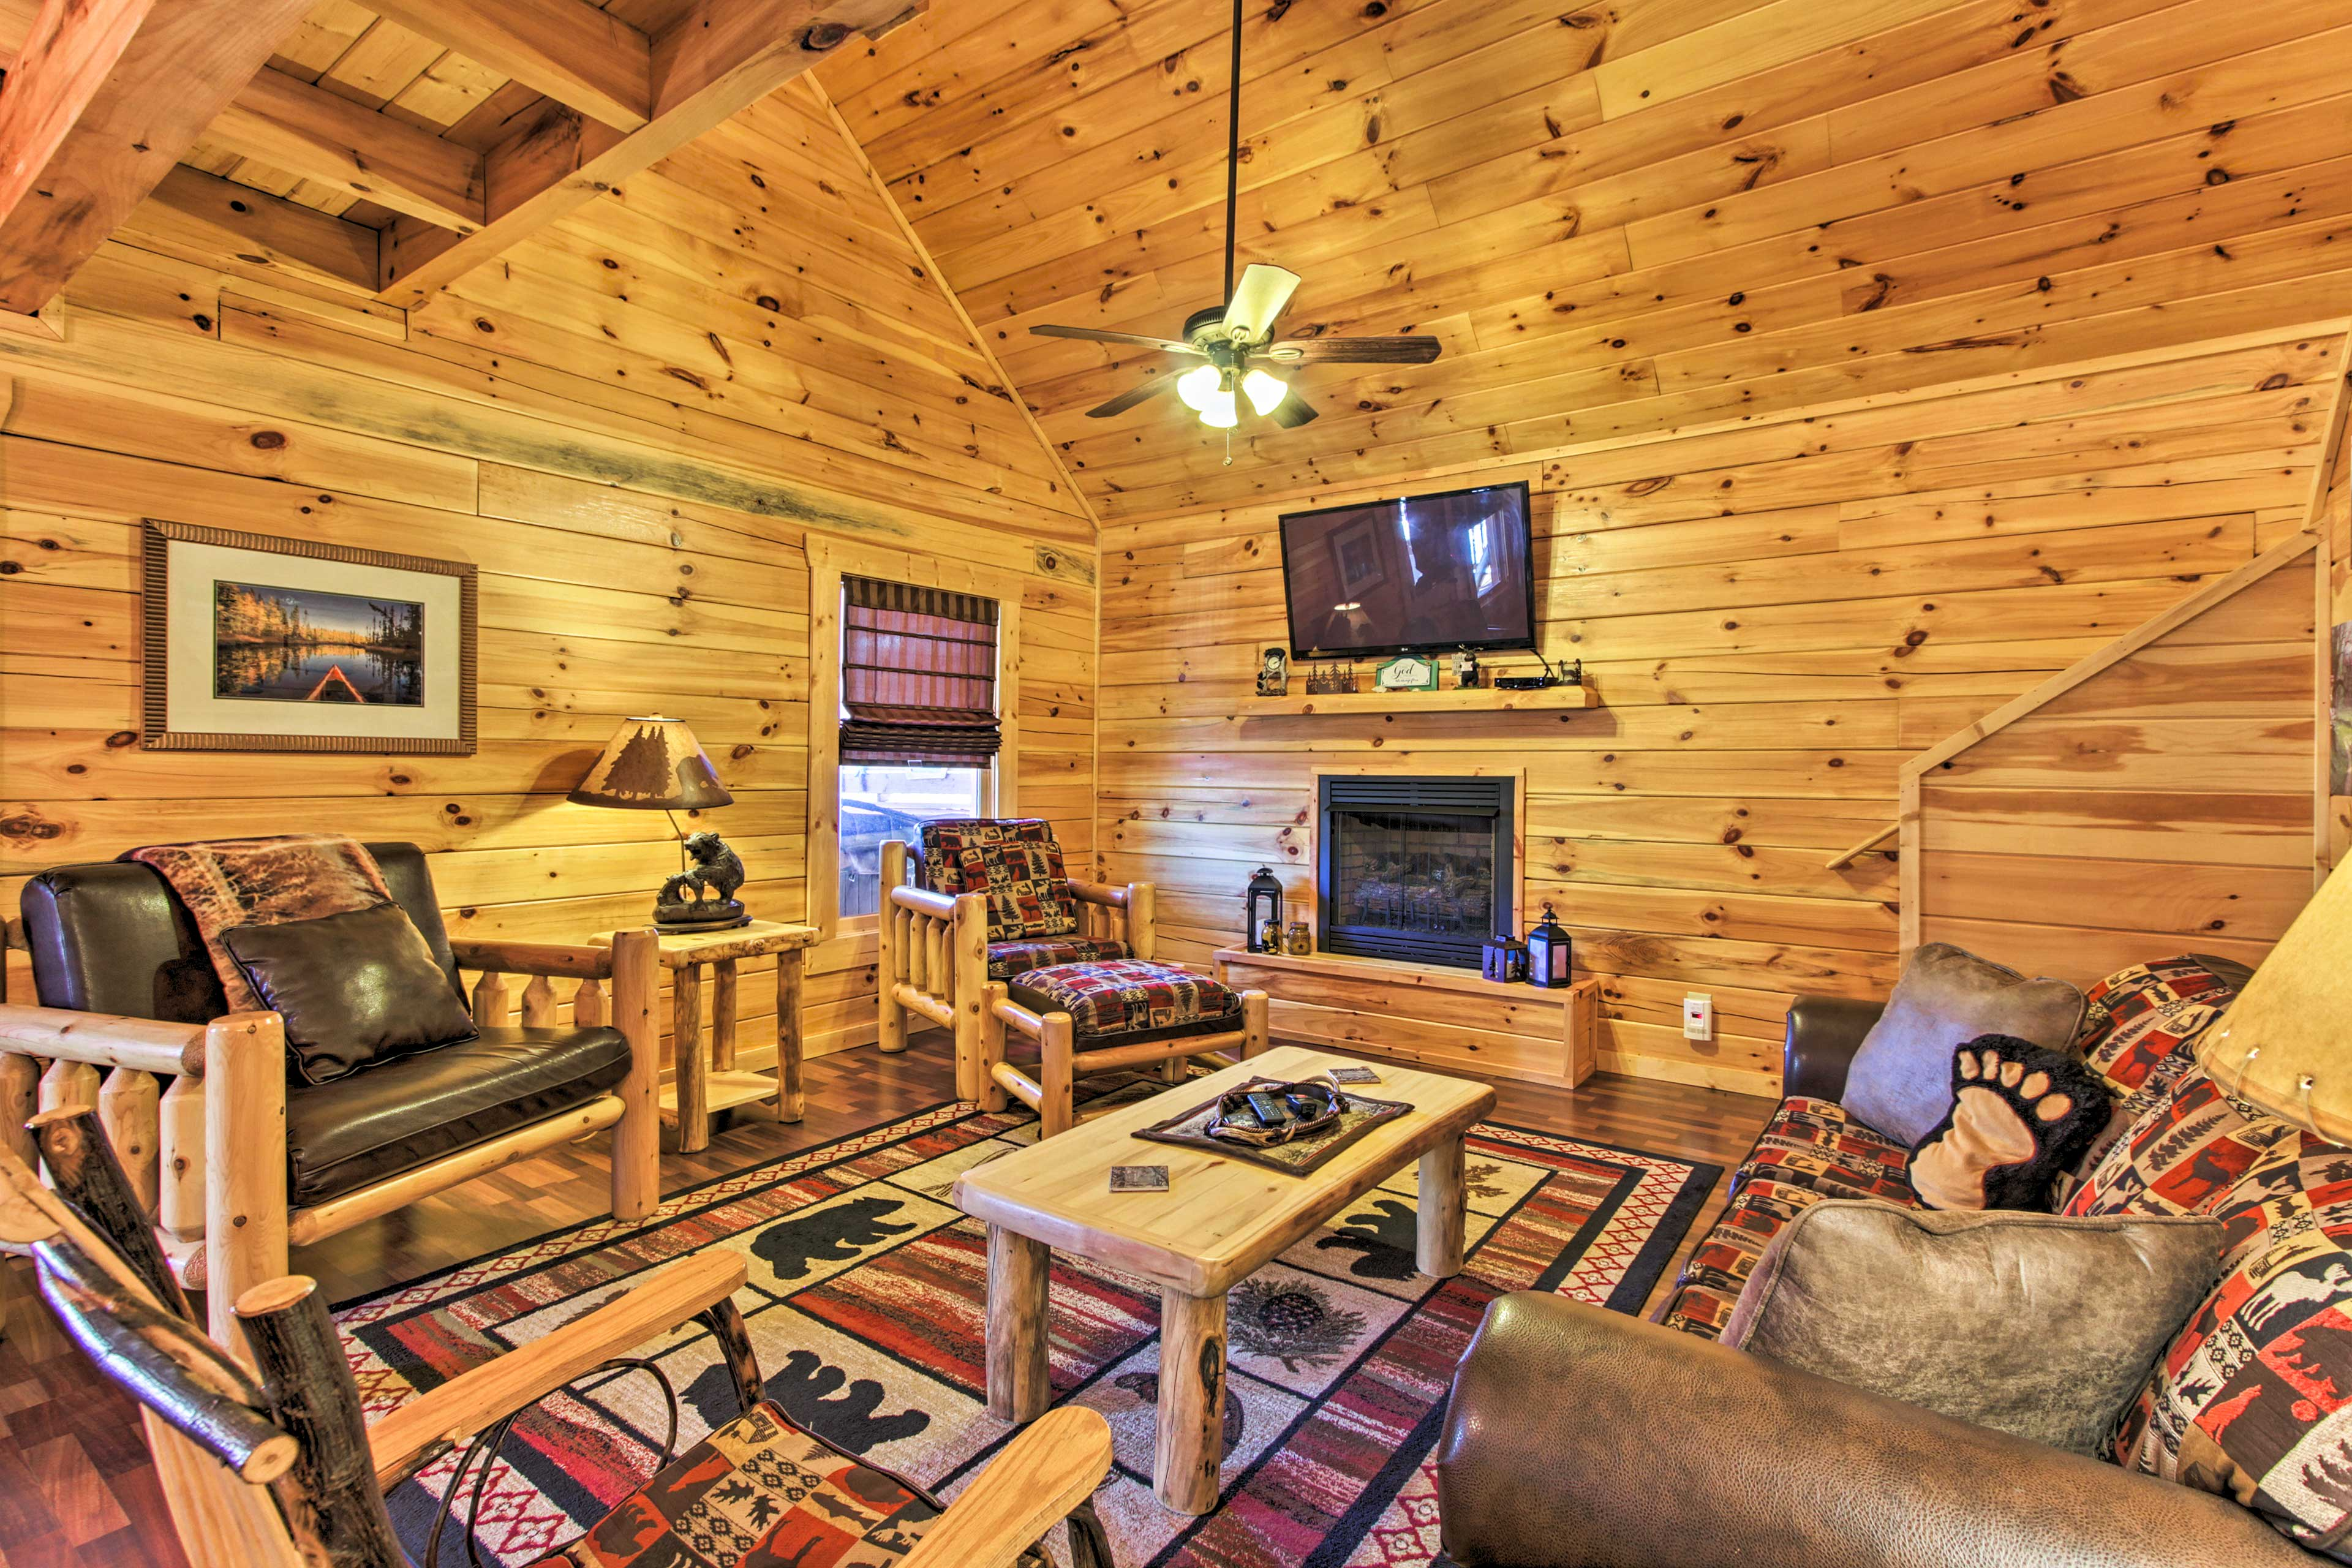 Indoors, mountain-themed decor accentuates the log cabin living space.